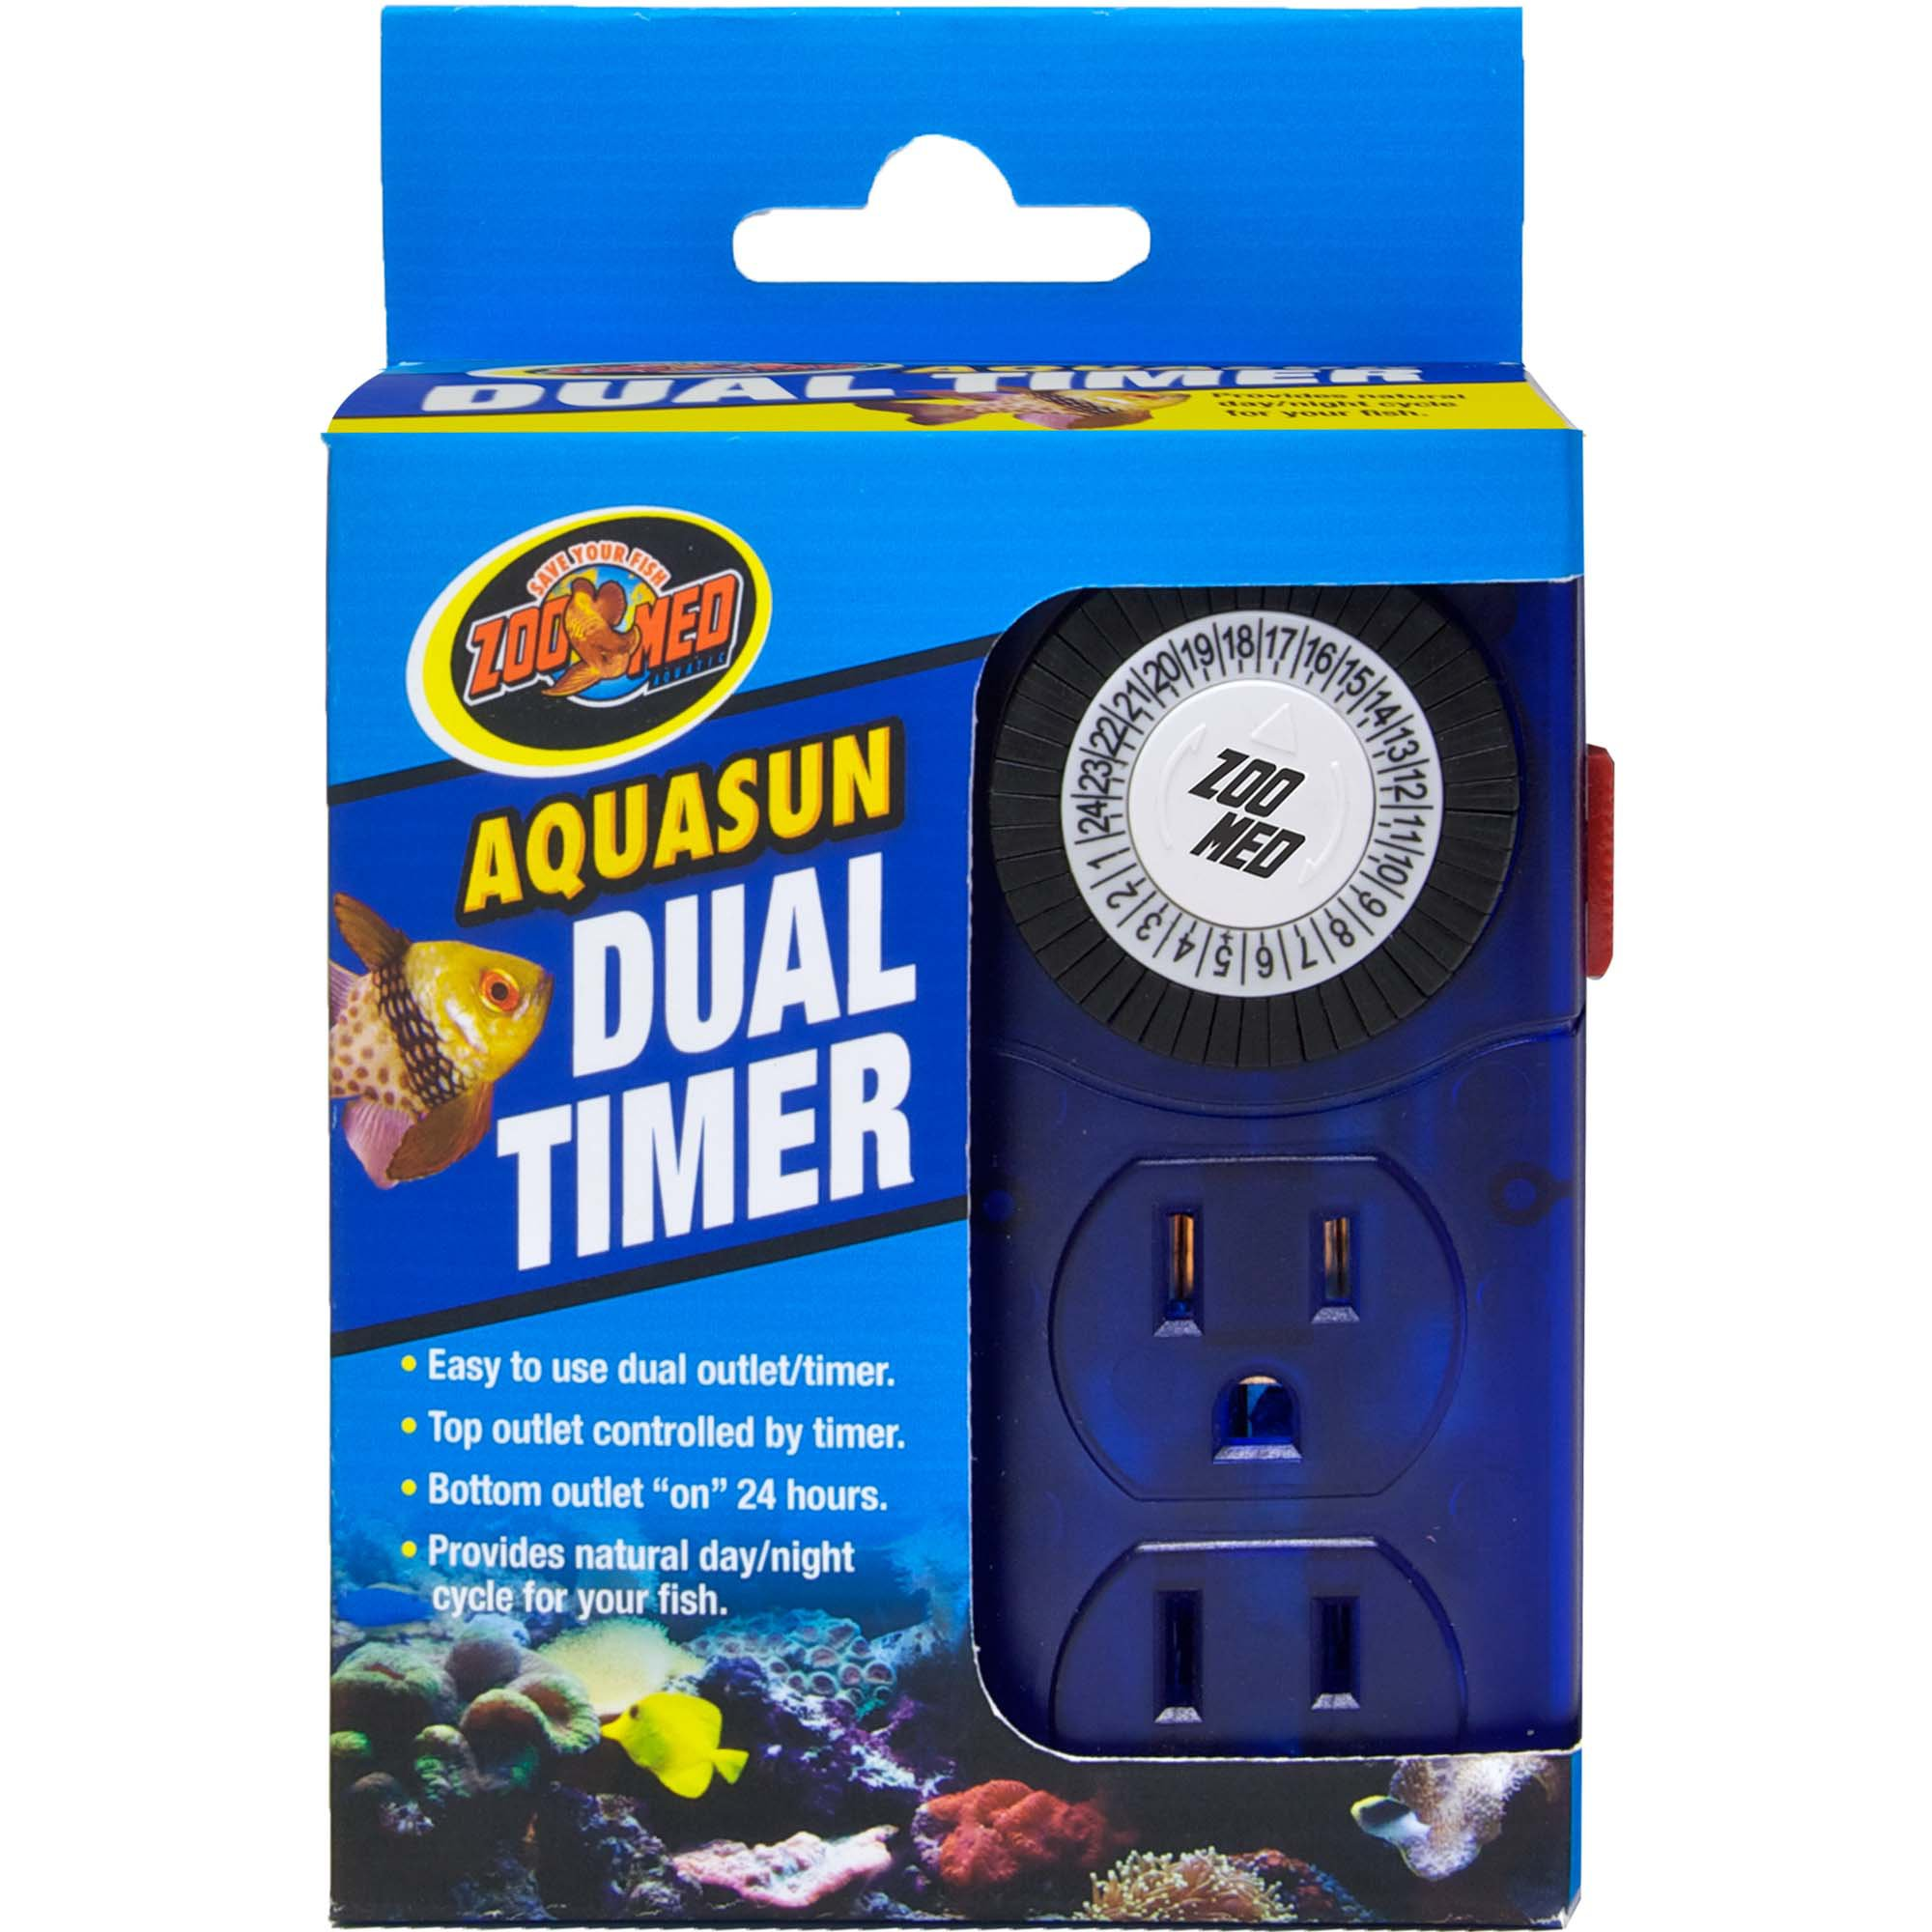 Fish tank light timer - Zoo Med Aquasun Dual Aquarium Timer